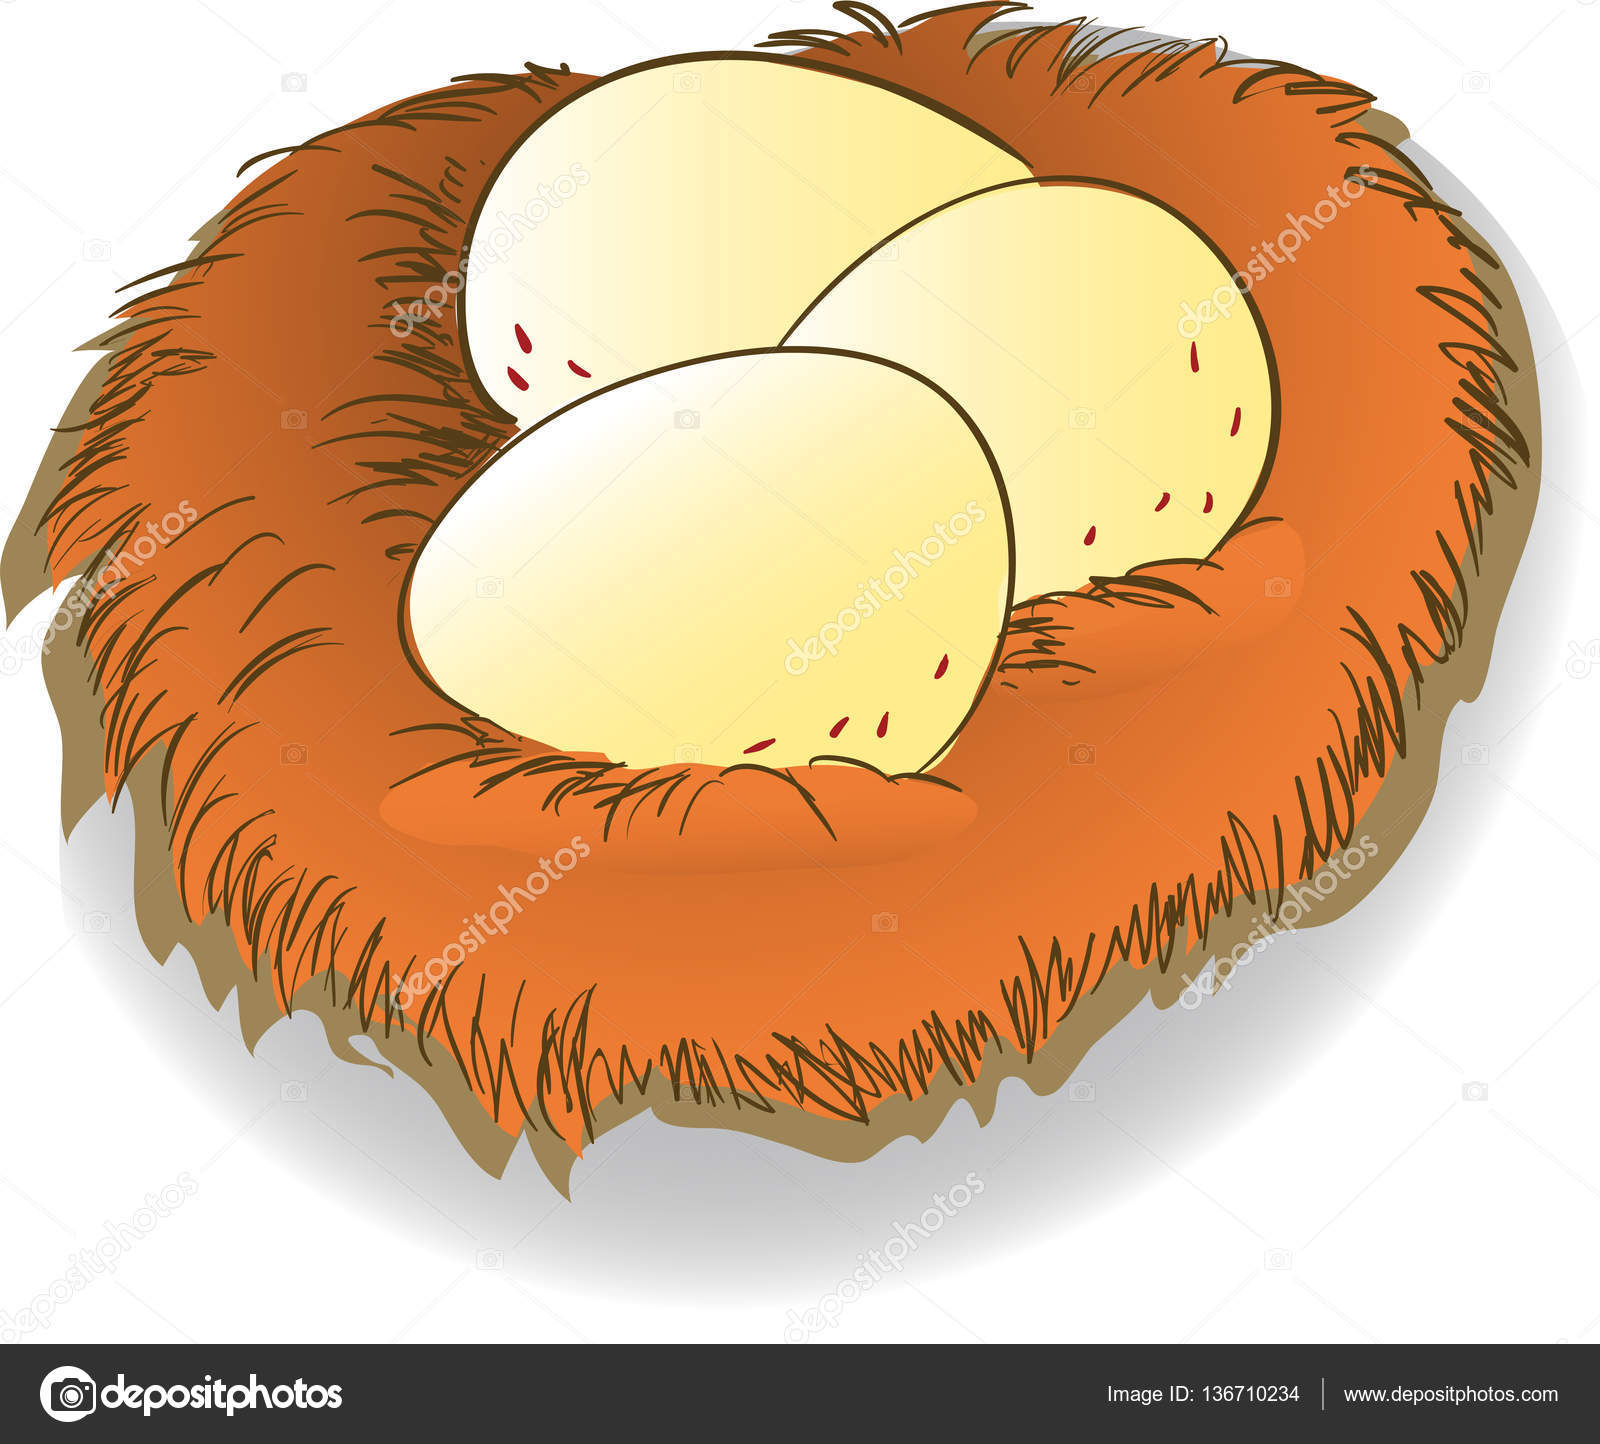 eggs png clipart - chicken e PNG image with transparent background | TOPpng